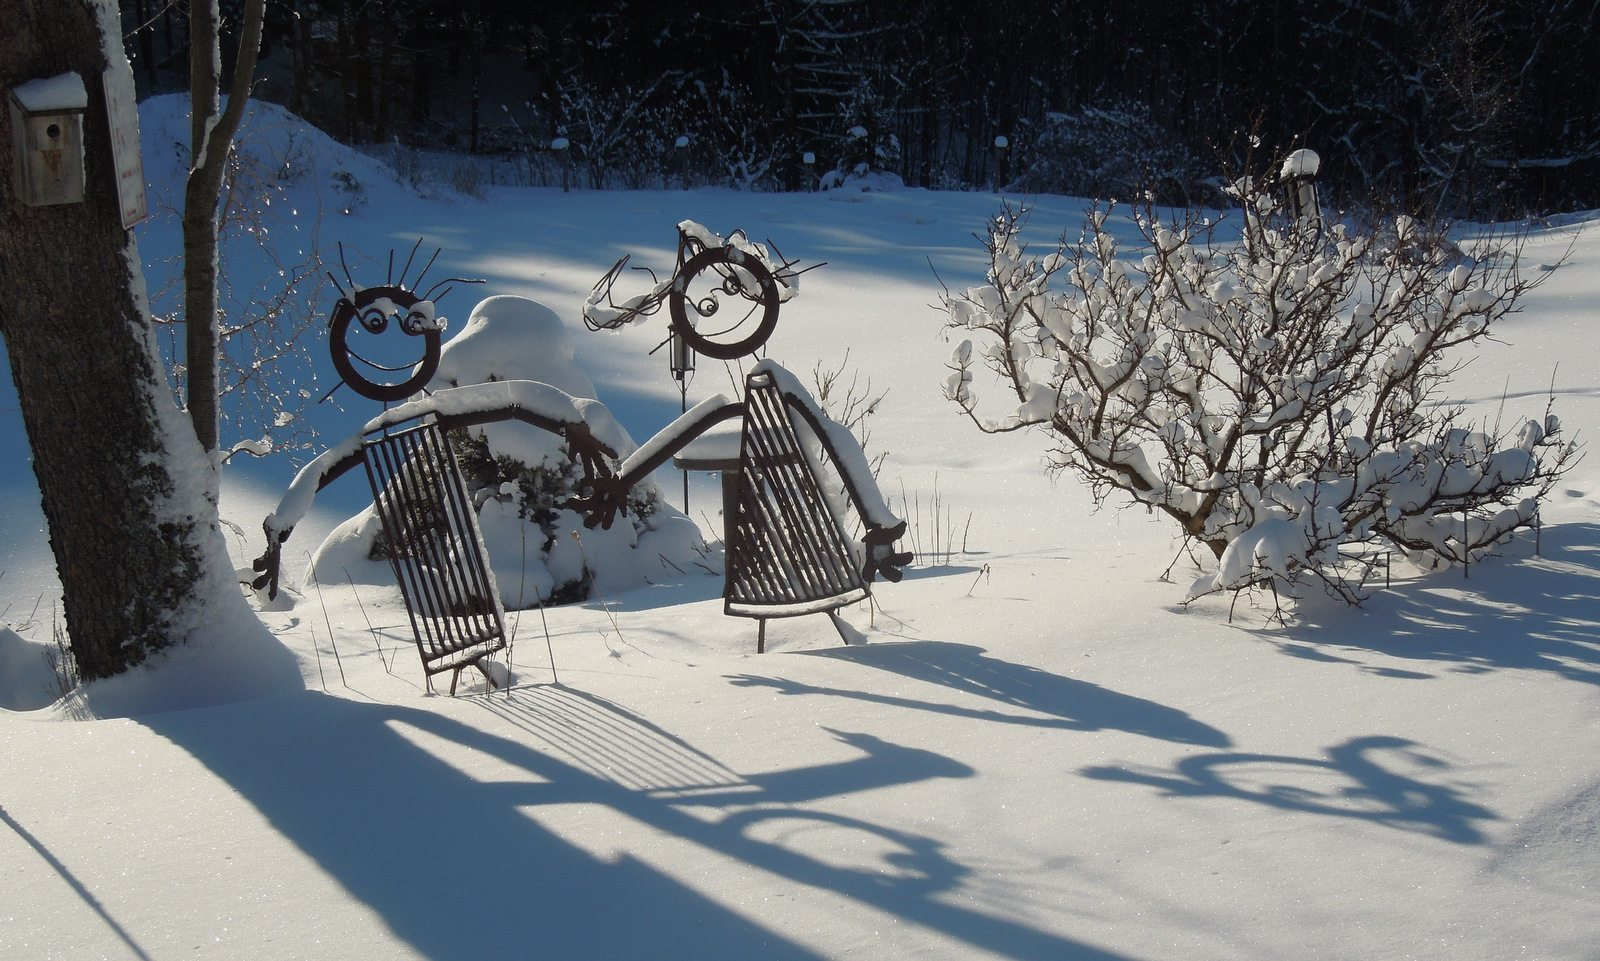 Image: Metal sculptures of two kids cast long shadows in the snow